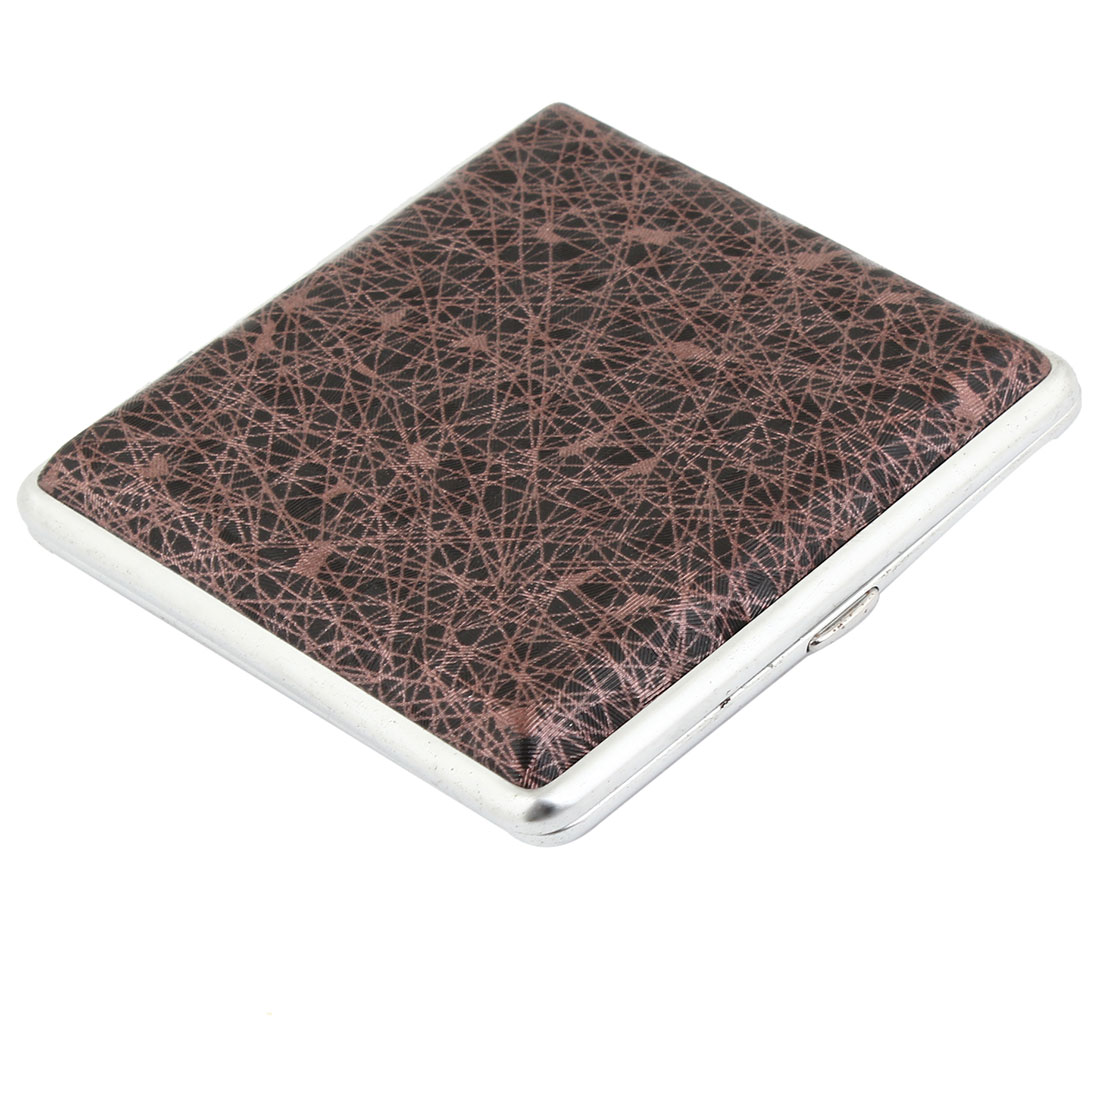 9.5cm x 9.5cm Check Pattern Cigarette Holder Case Brown Taupe